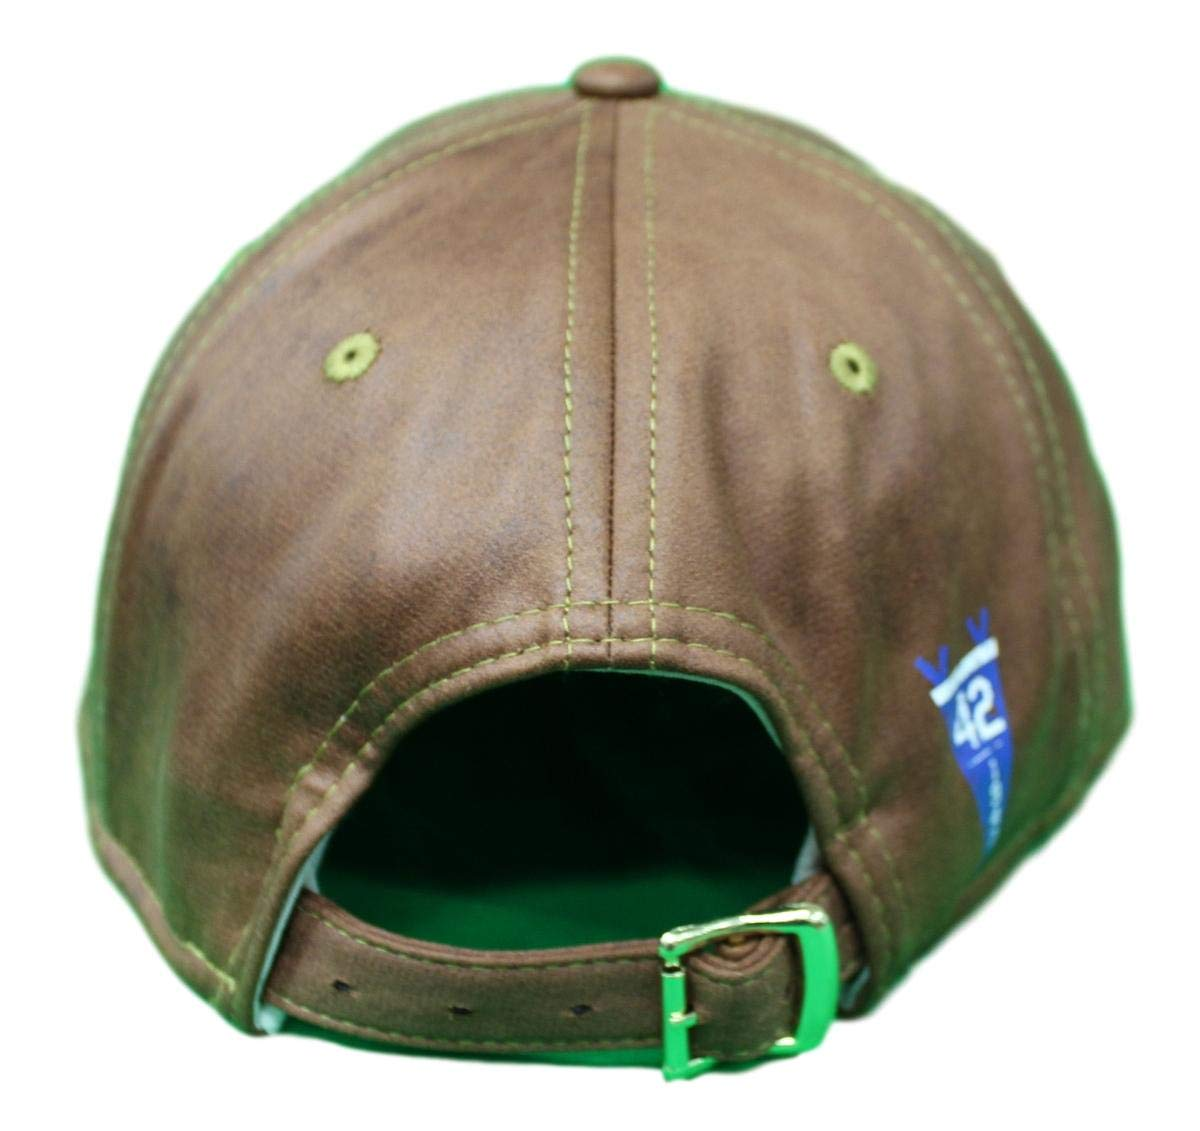 new product 994e8 57ffc Amazon.com   New Era Brooklyn Dodgers 9Twenty Cooperstown Jackie Robinson  Adjustable Hat   Sports   Outdoors